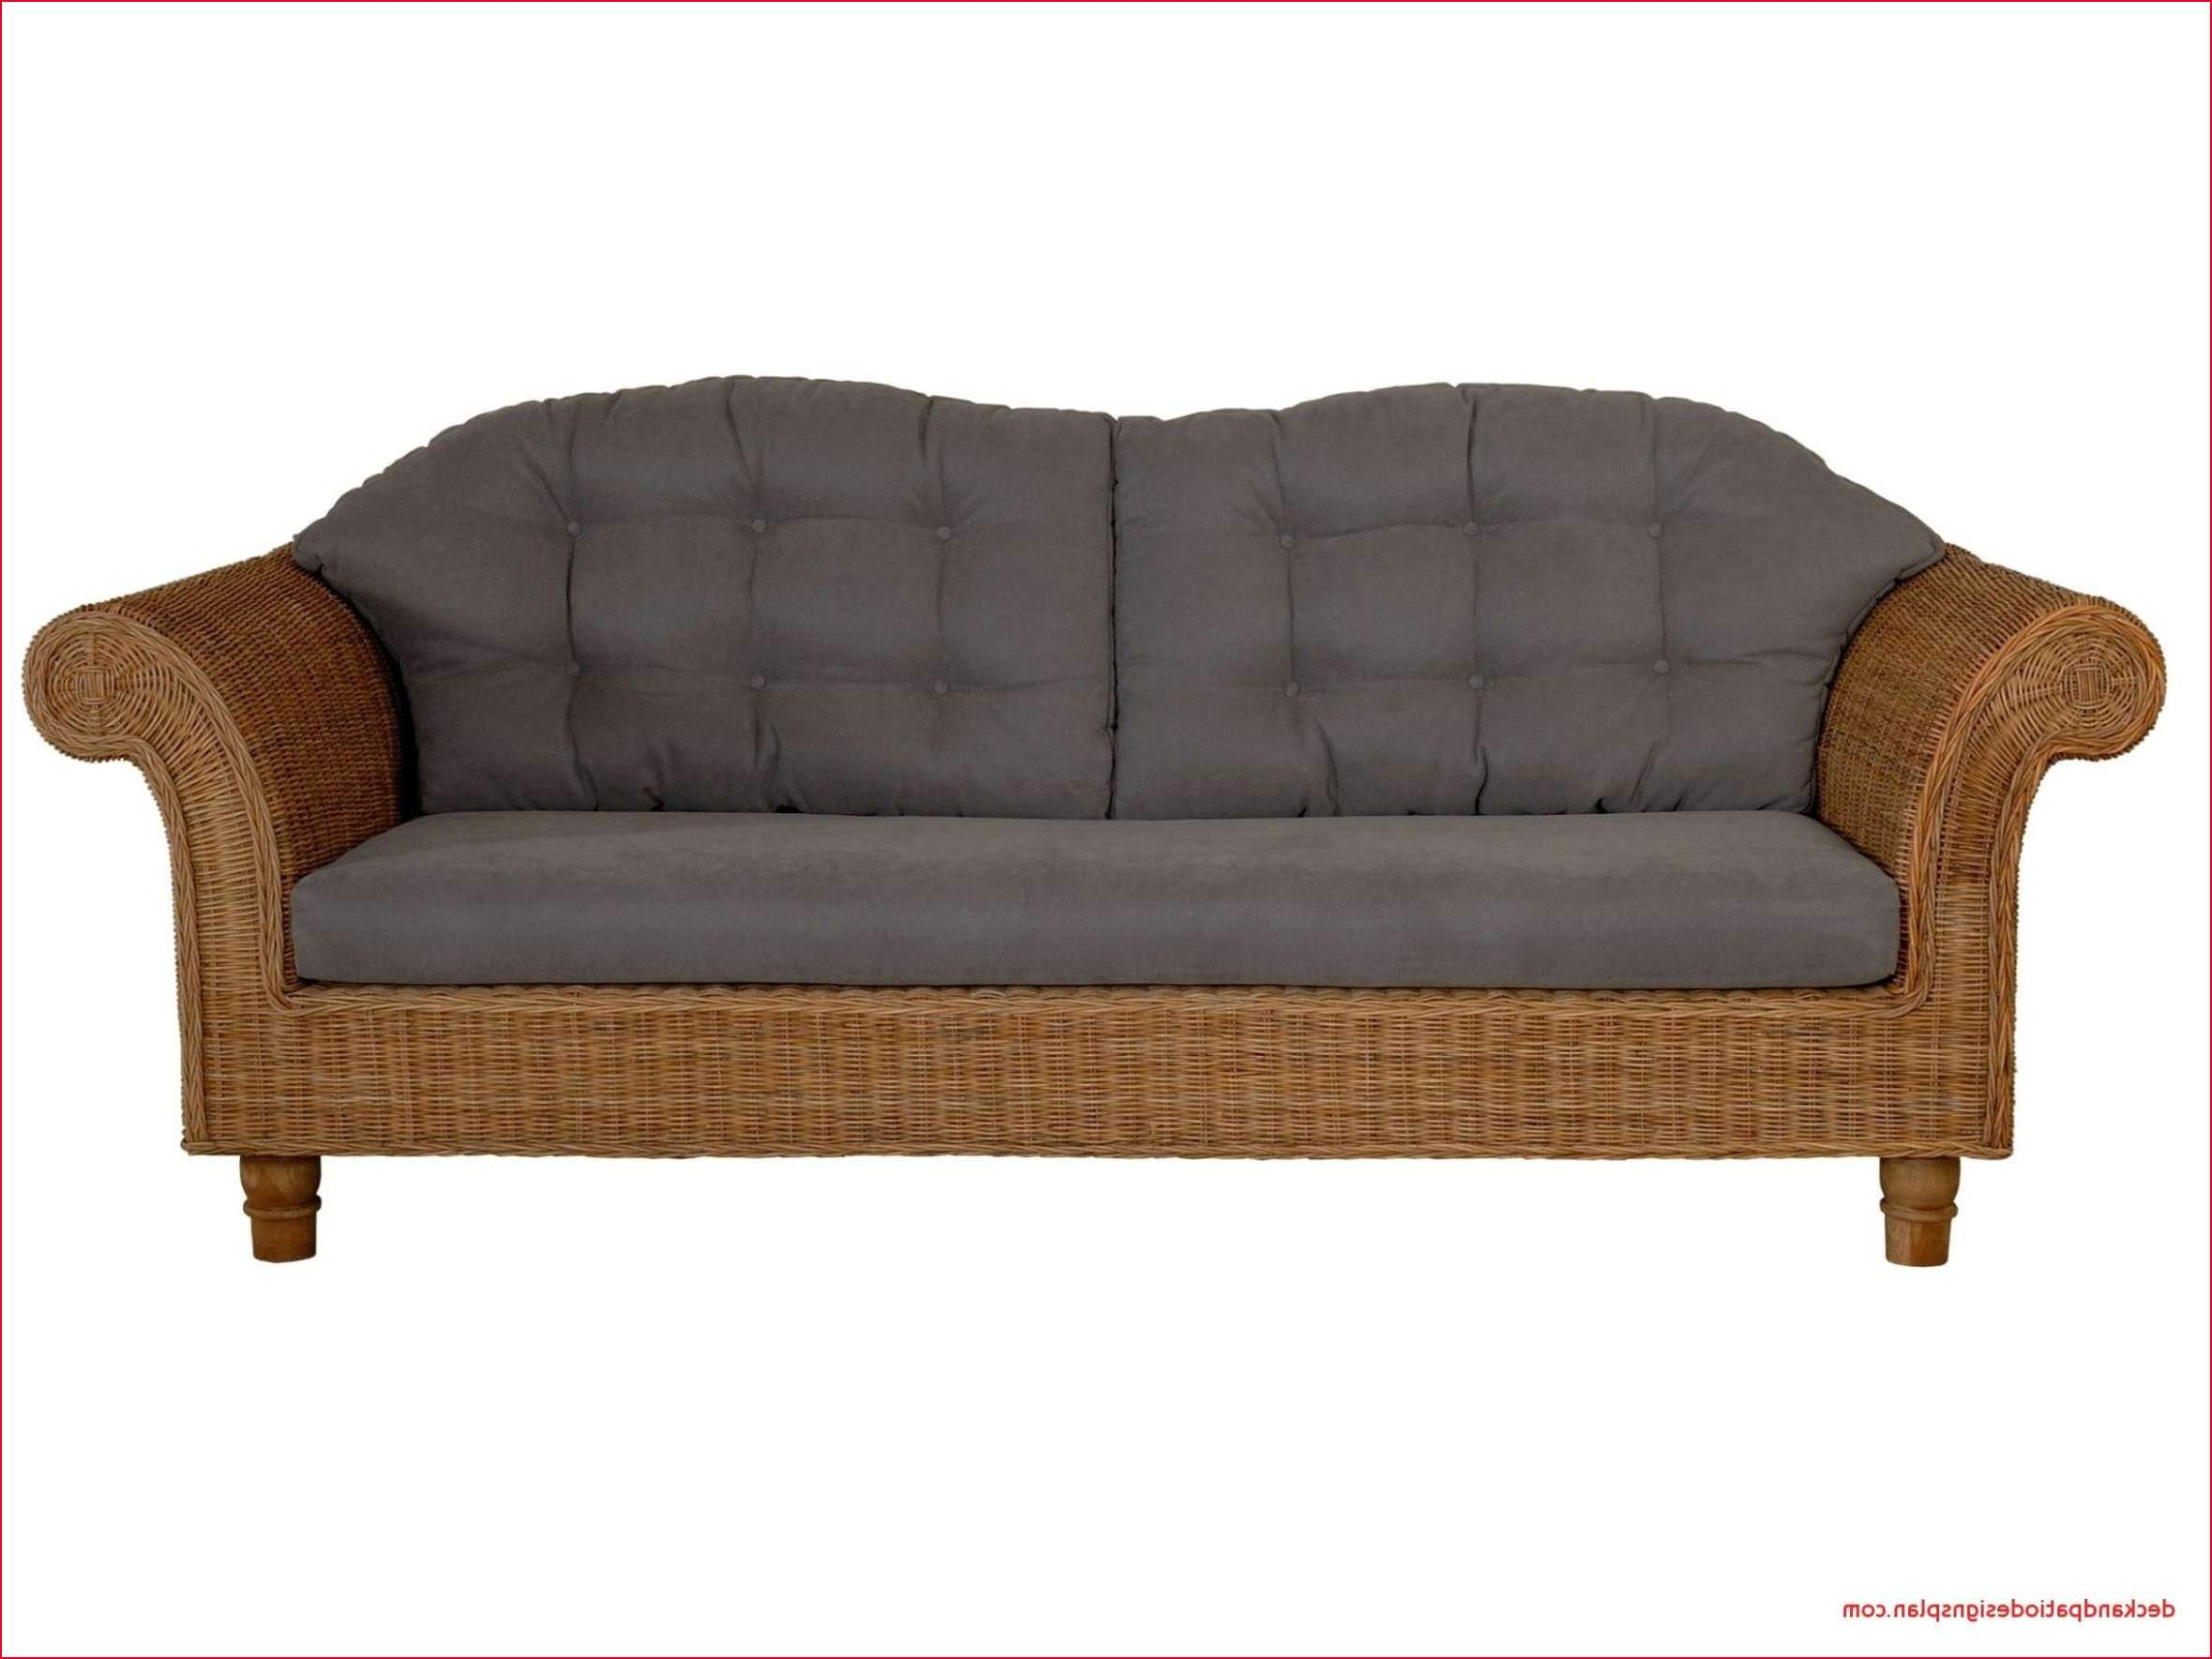 ideen fur sofa sessel bilder von sofa dekoration pxpzwsva of garten lounge sessel